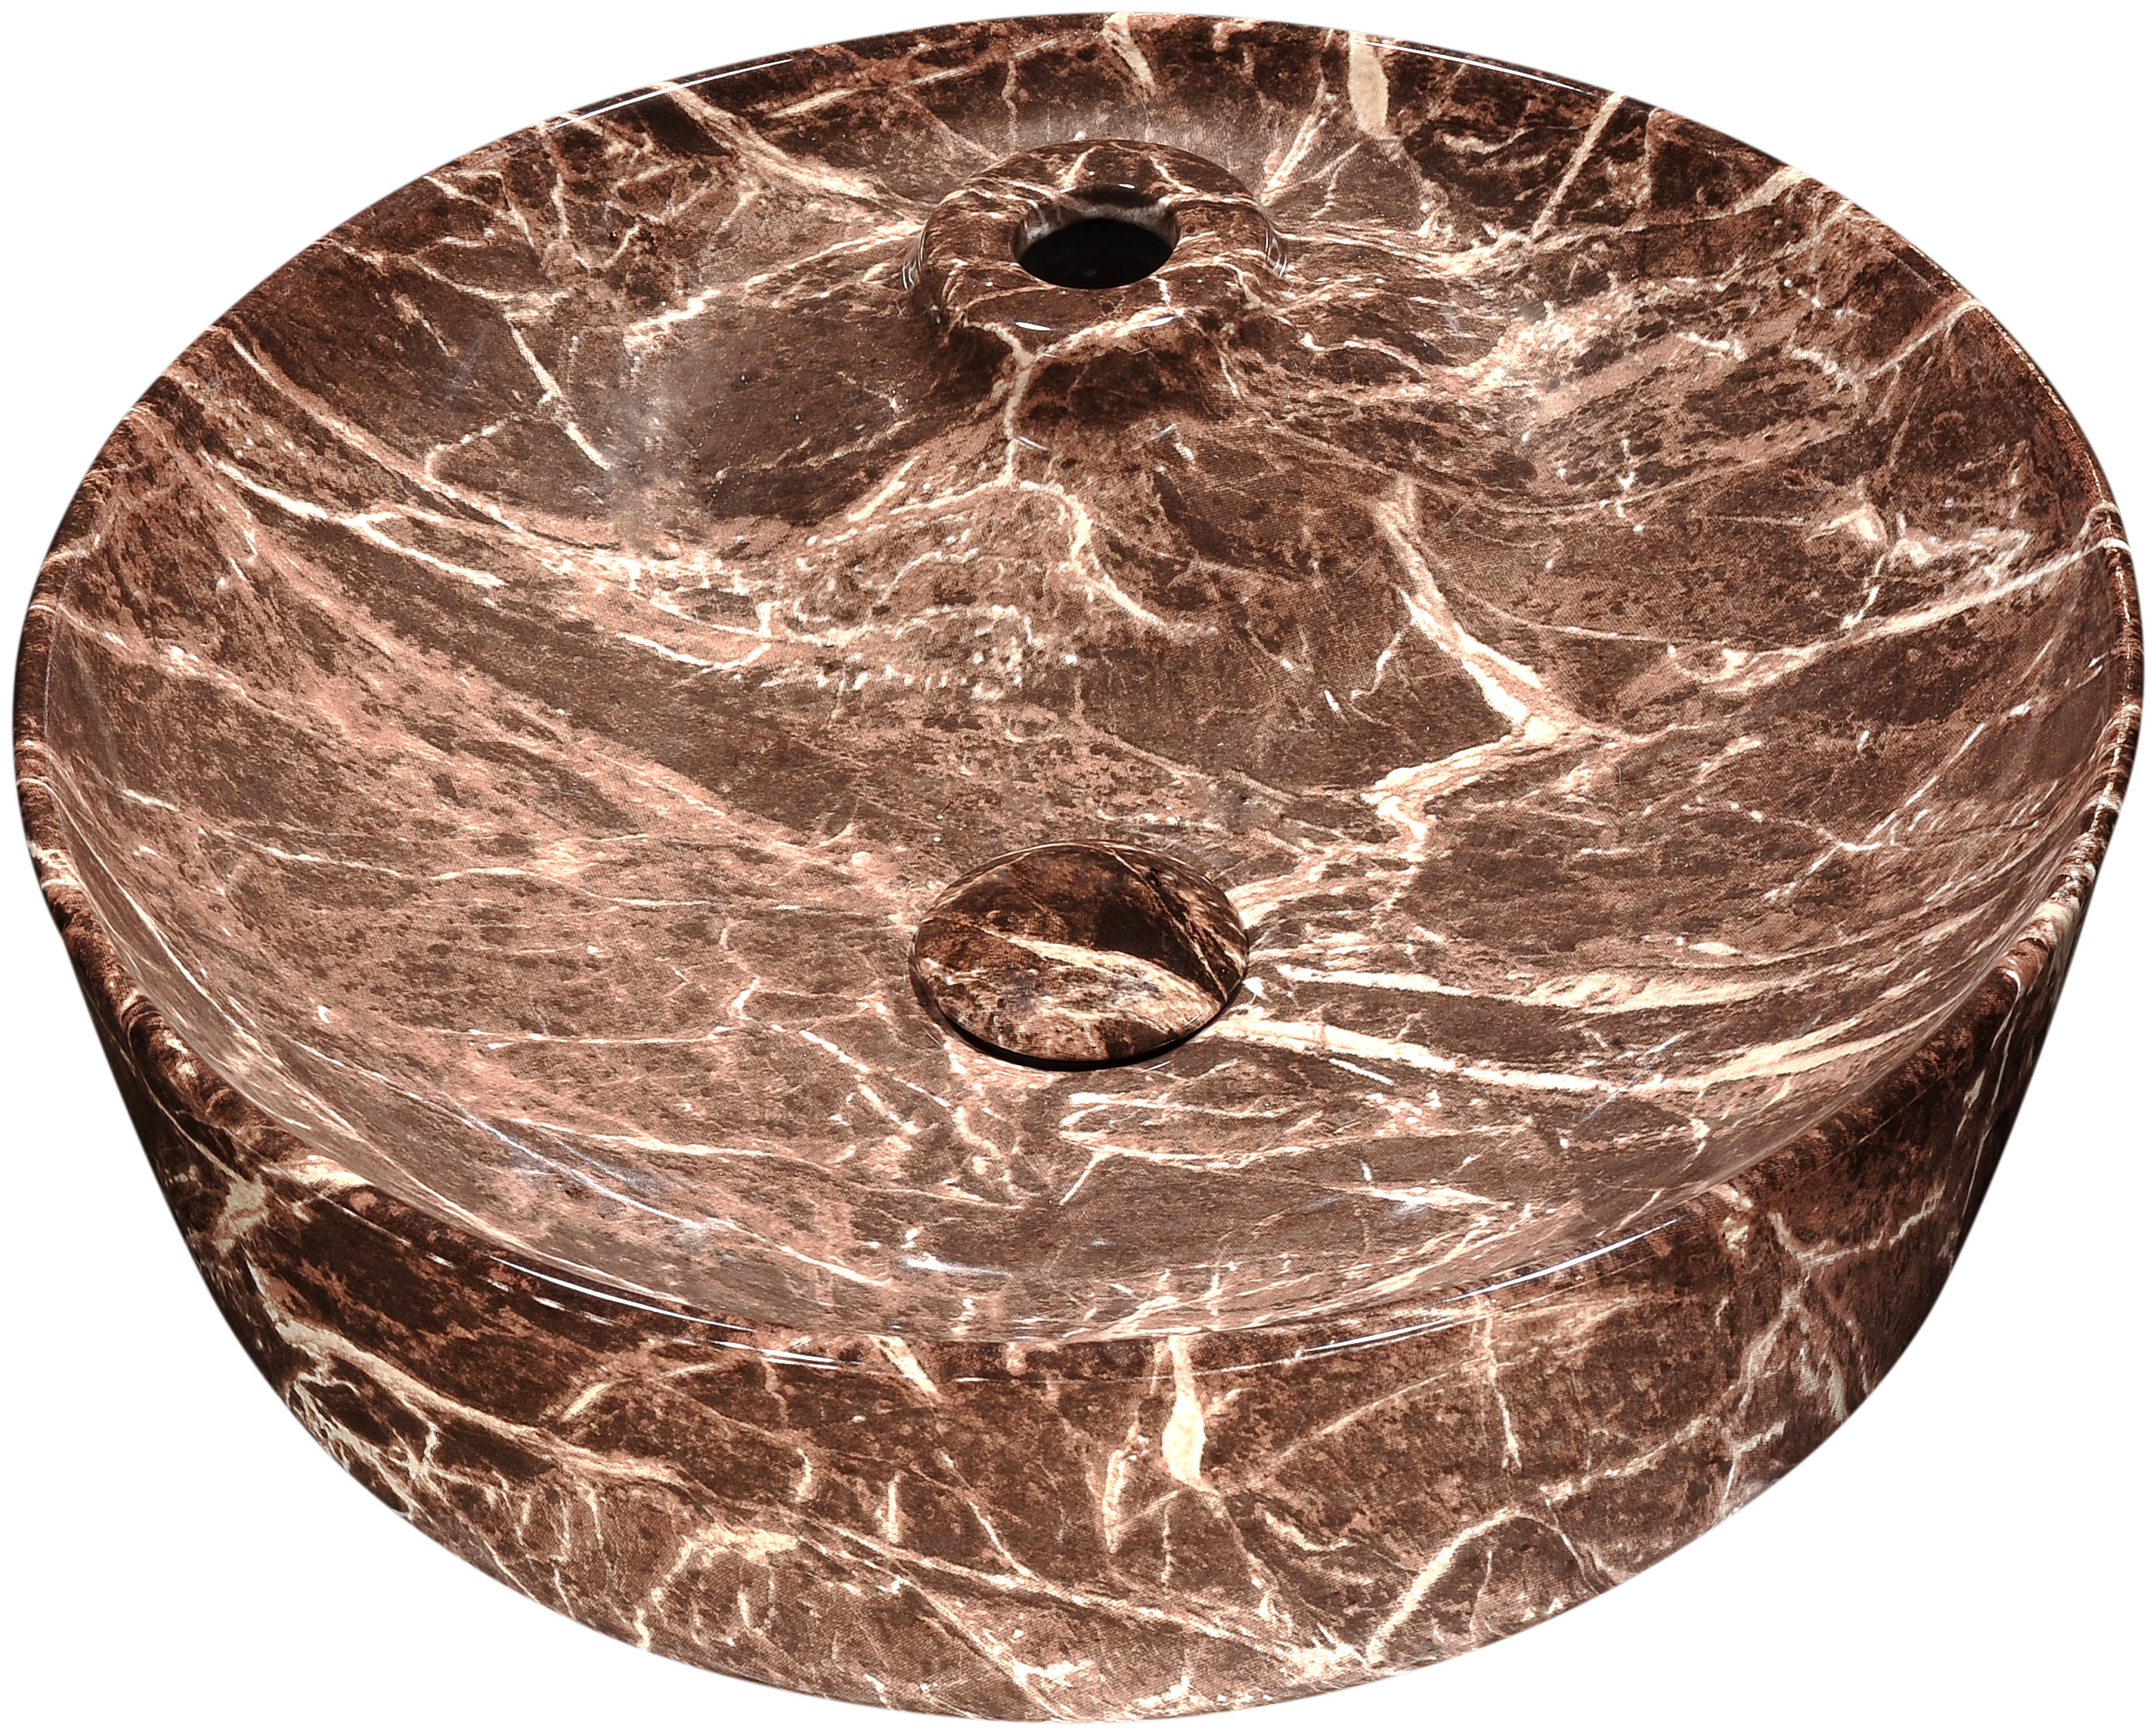 ANZZI LS-AZ235 Marbled Series Ceramic Vessel Sink In Marbled Chocolate Finish